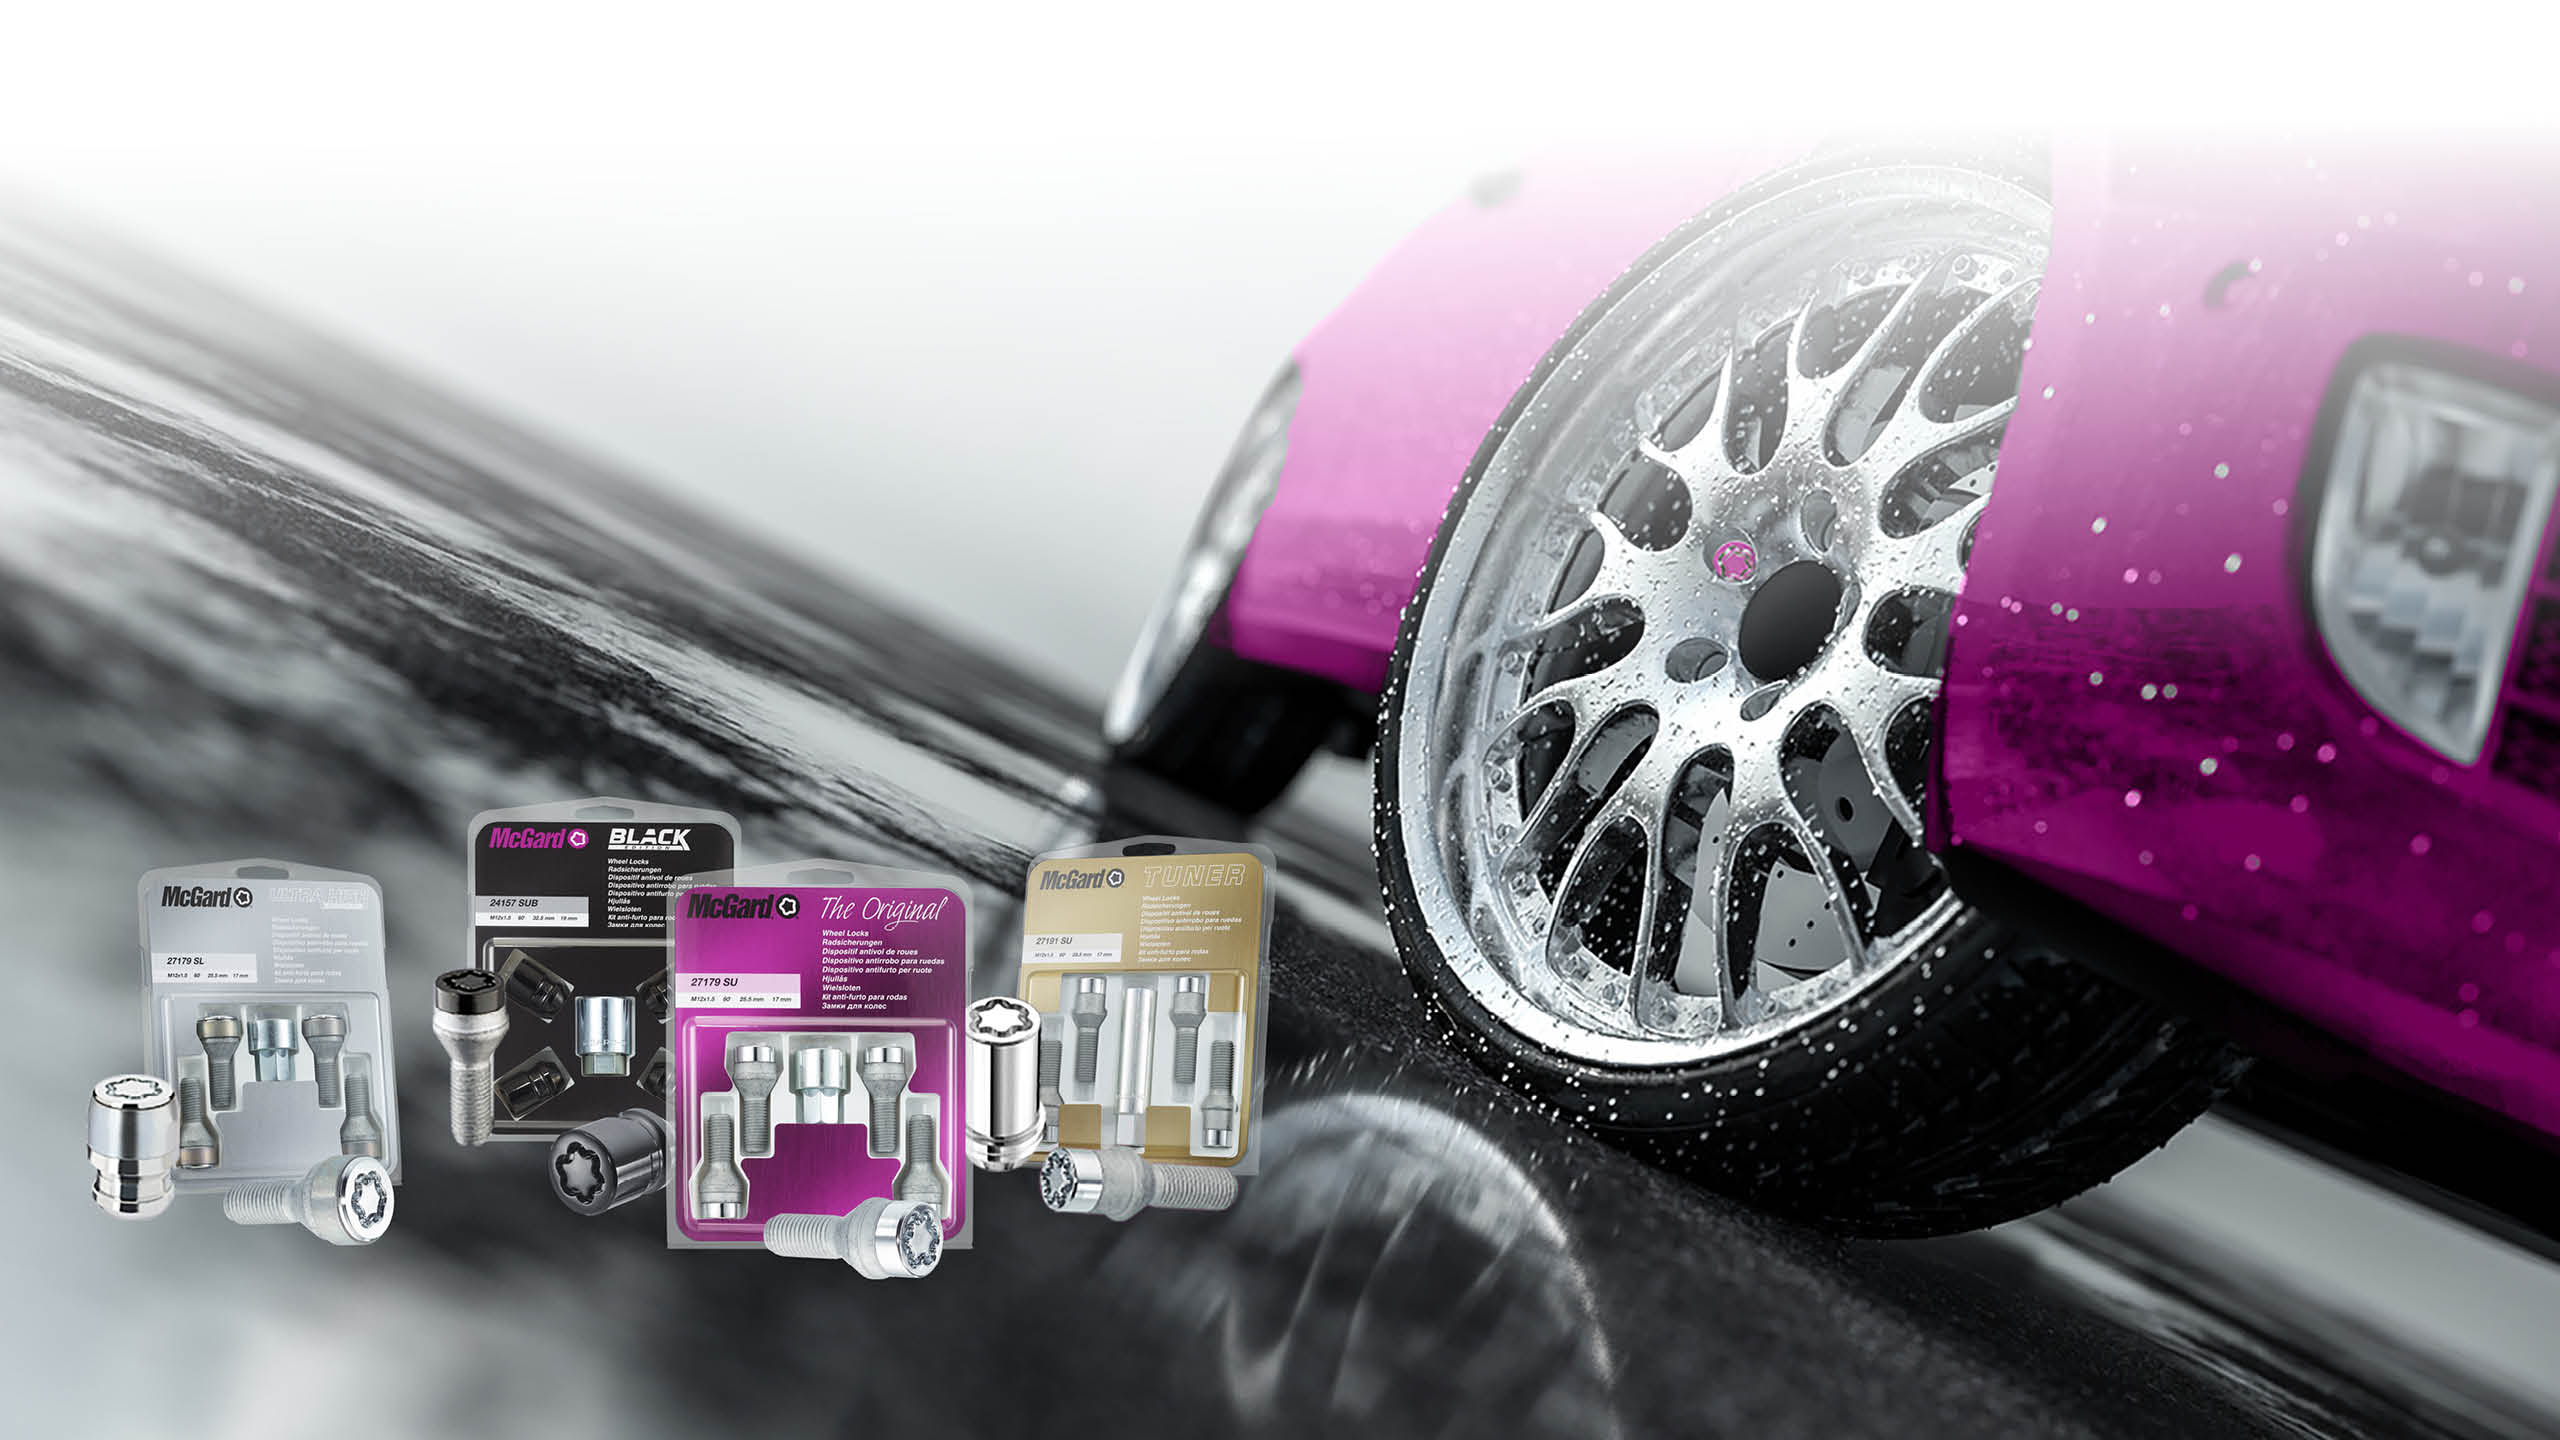 McGard-Automobile-Retrofit- Security-Solutions- Protection-for-wheels-wheel-rims-tyres